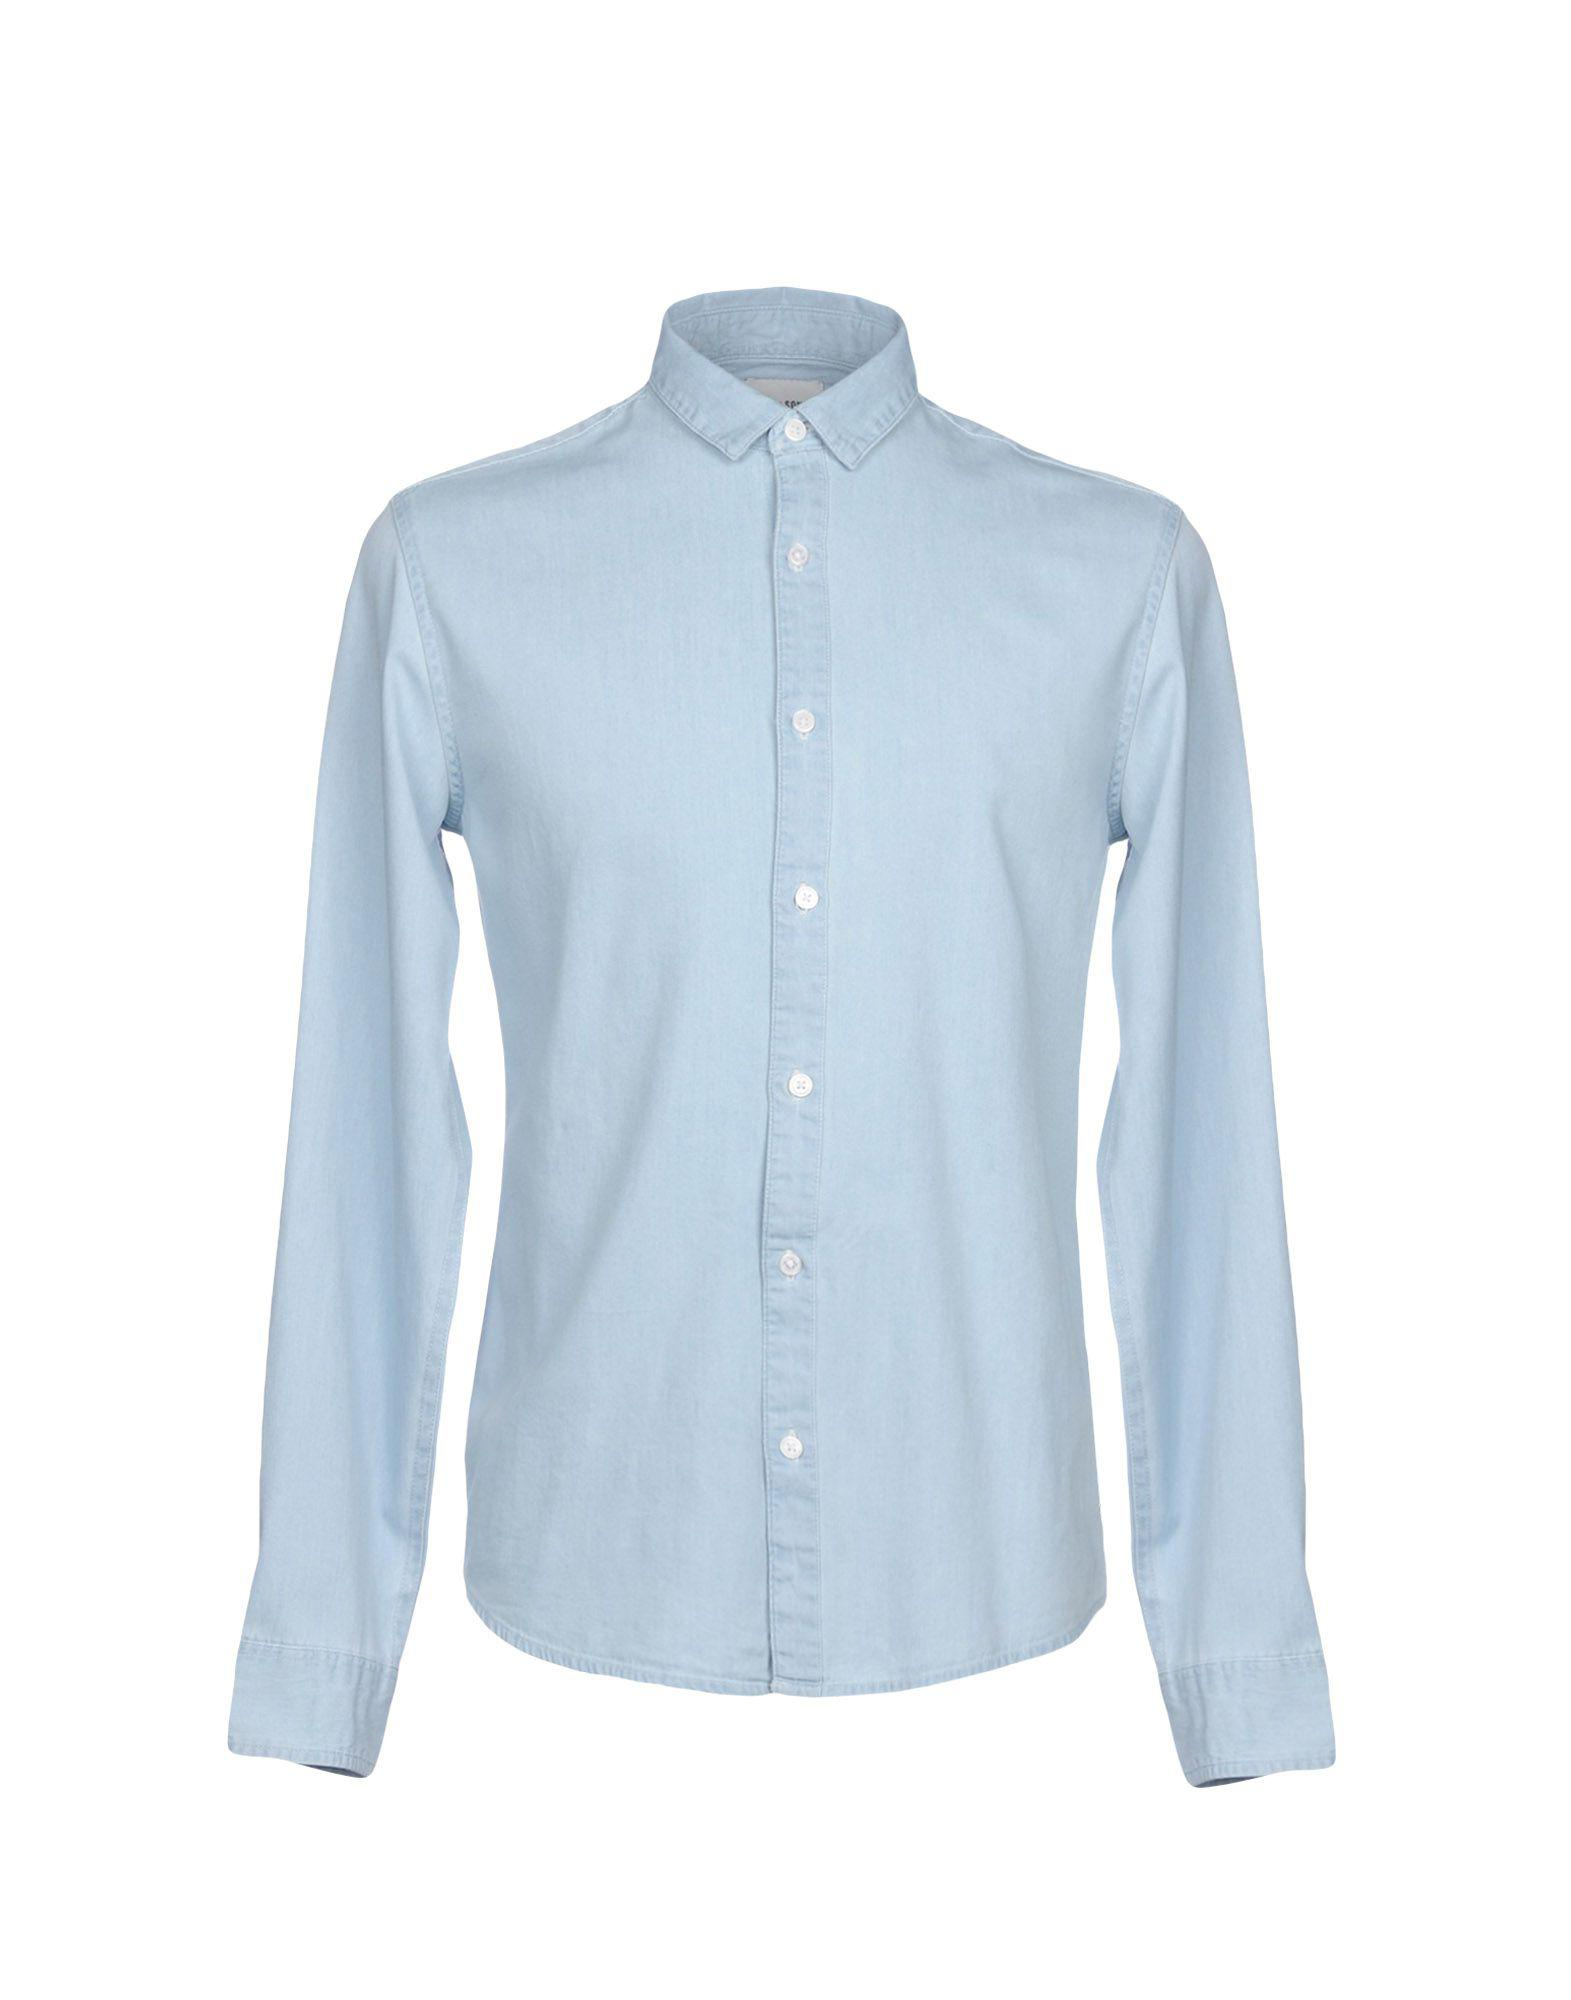 e4261f4f83 Lyst - Only   Sons Denim Shirt in Blue for Men